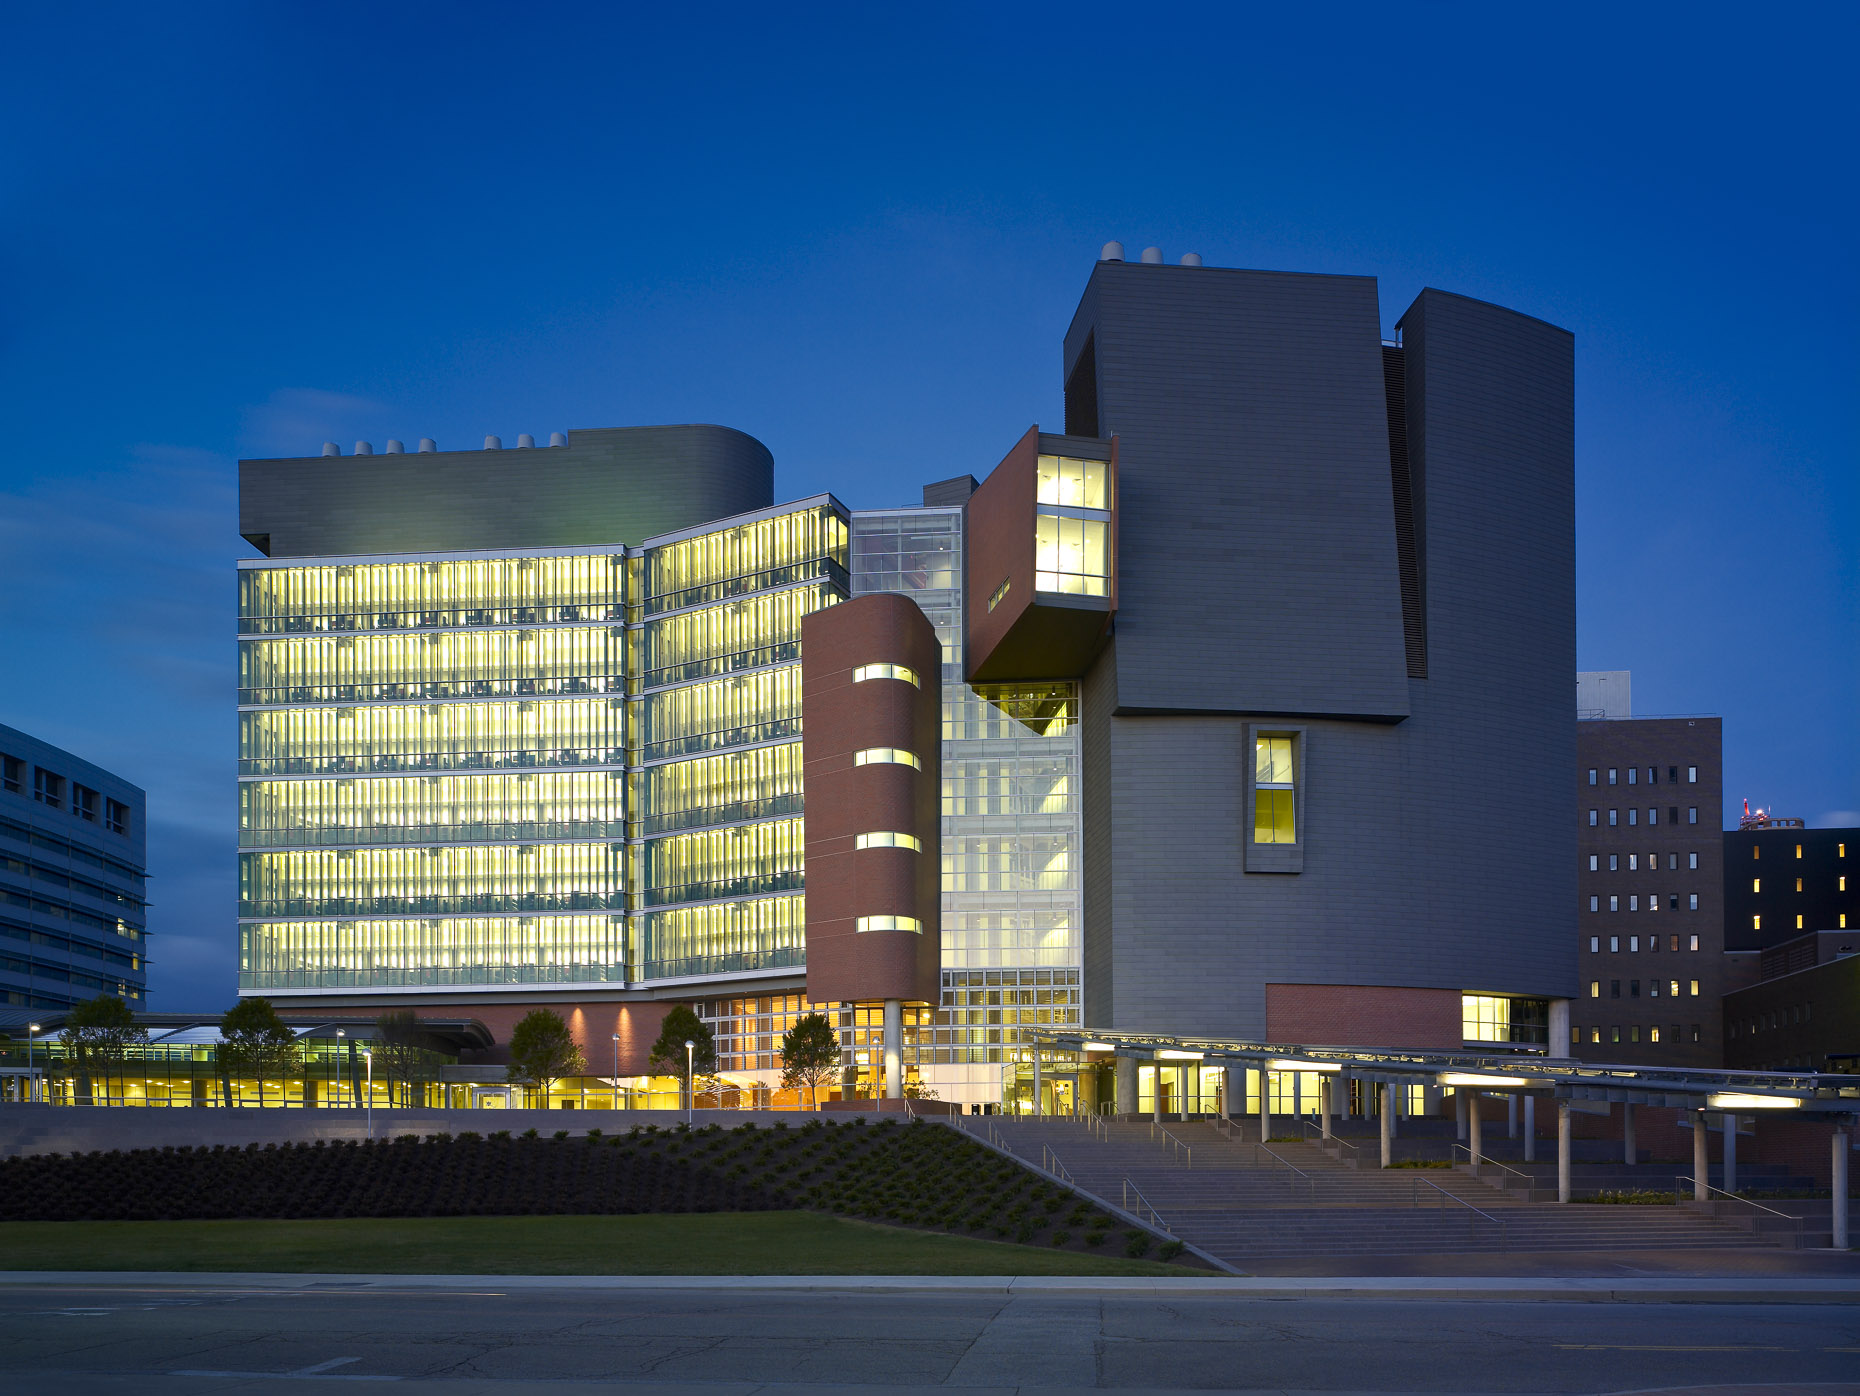 UC Medical Center CARE Crowley Building  by Studios Architecture photographed by Brad Feinknopf based in Columbus, Ohio